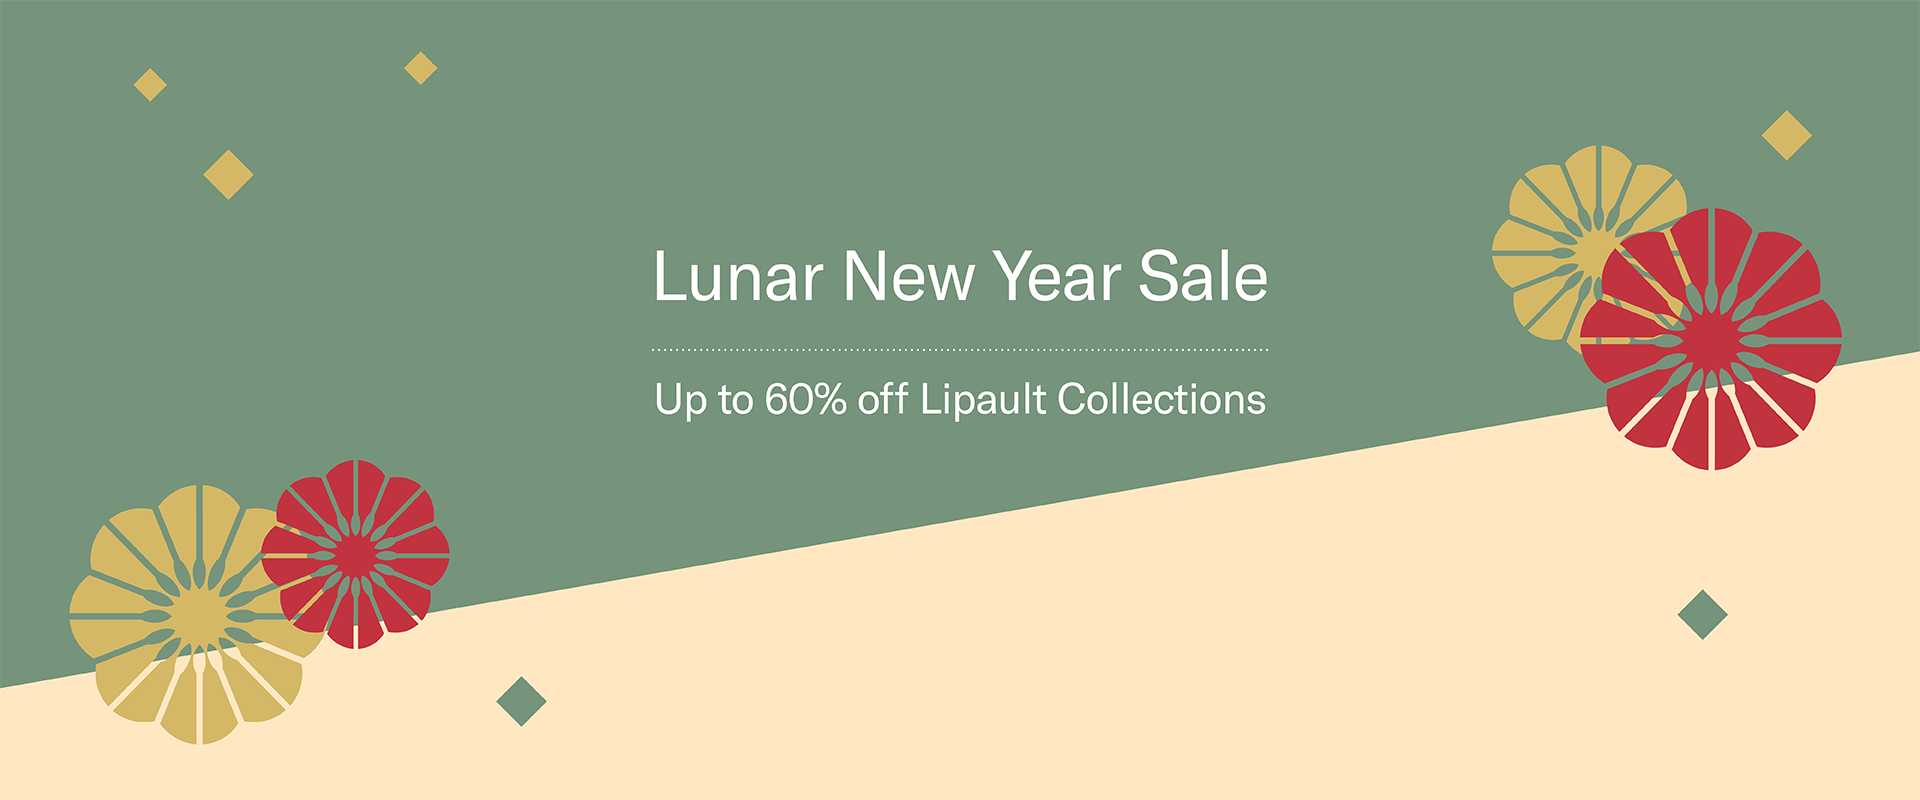 lunar-new-year-sale-50%off